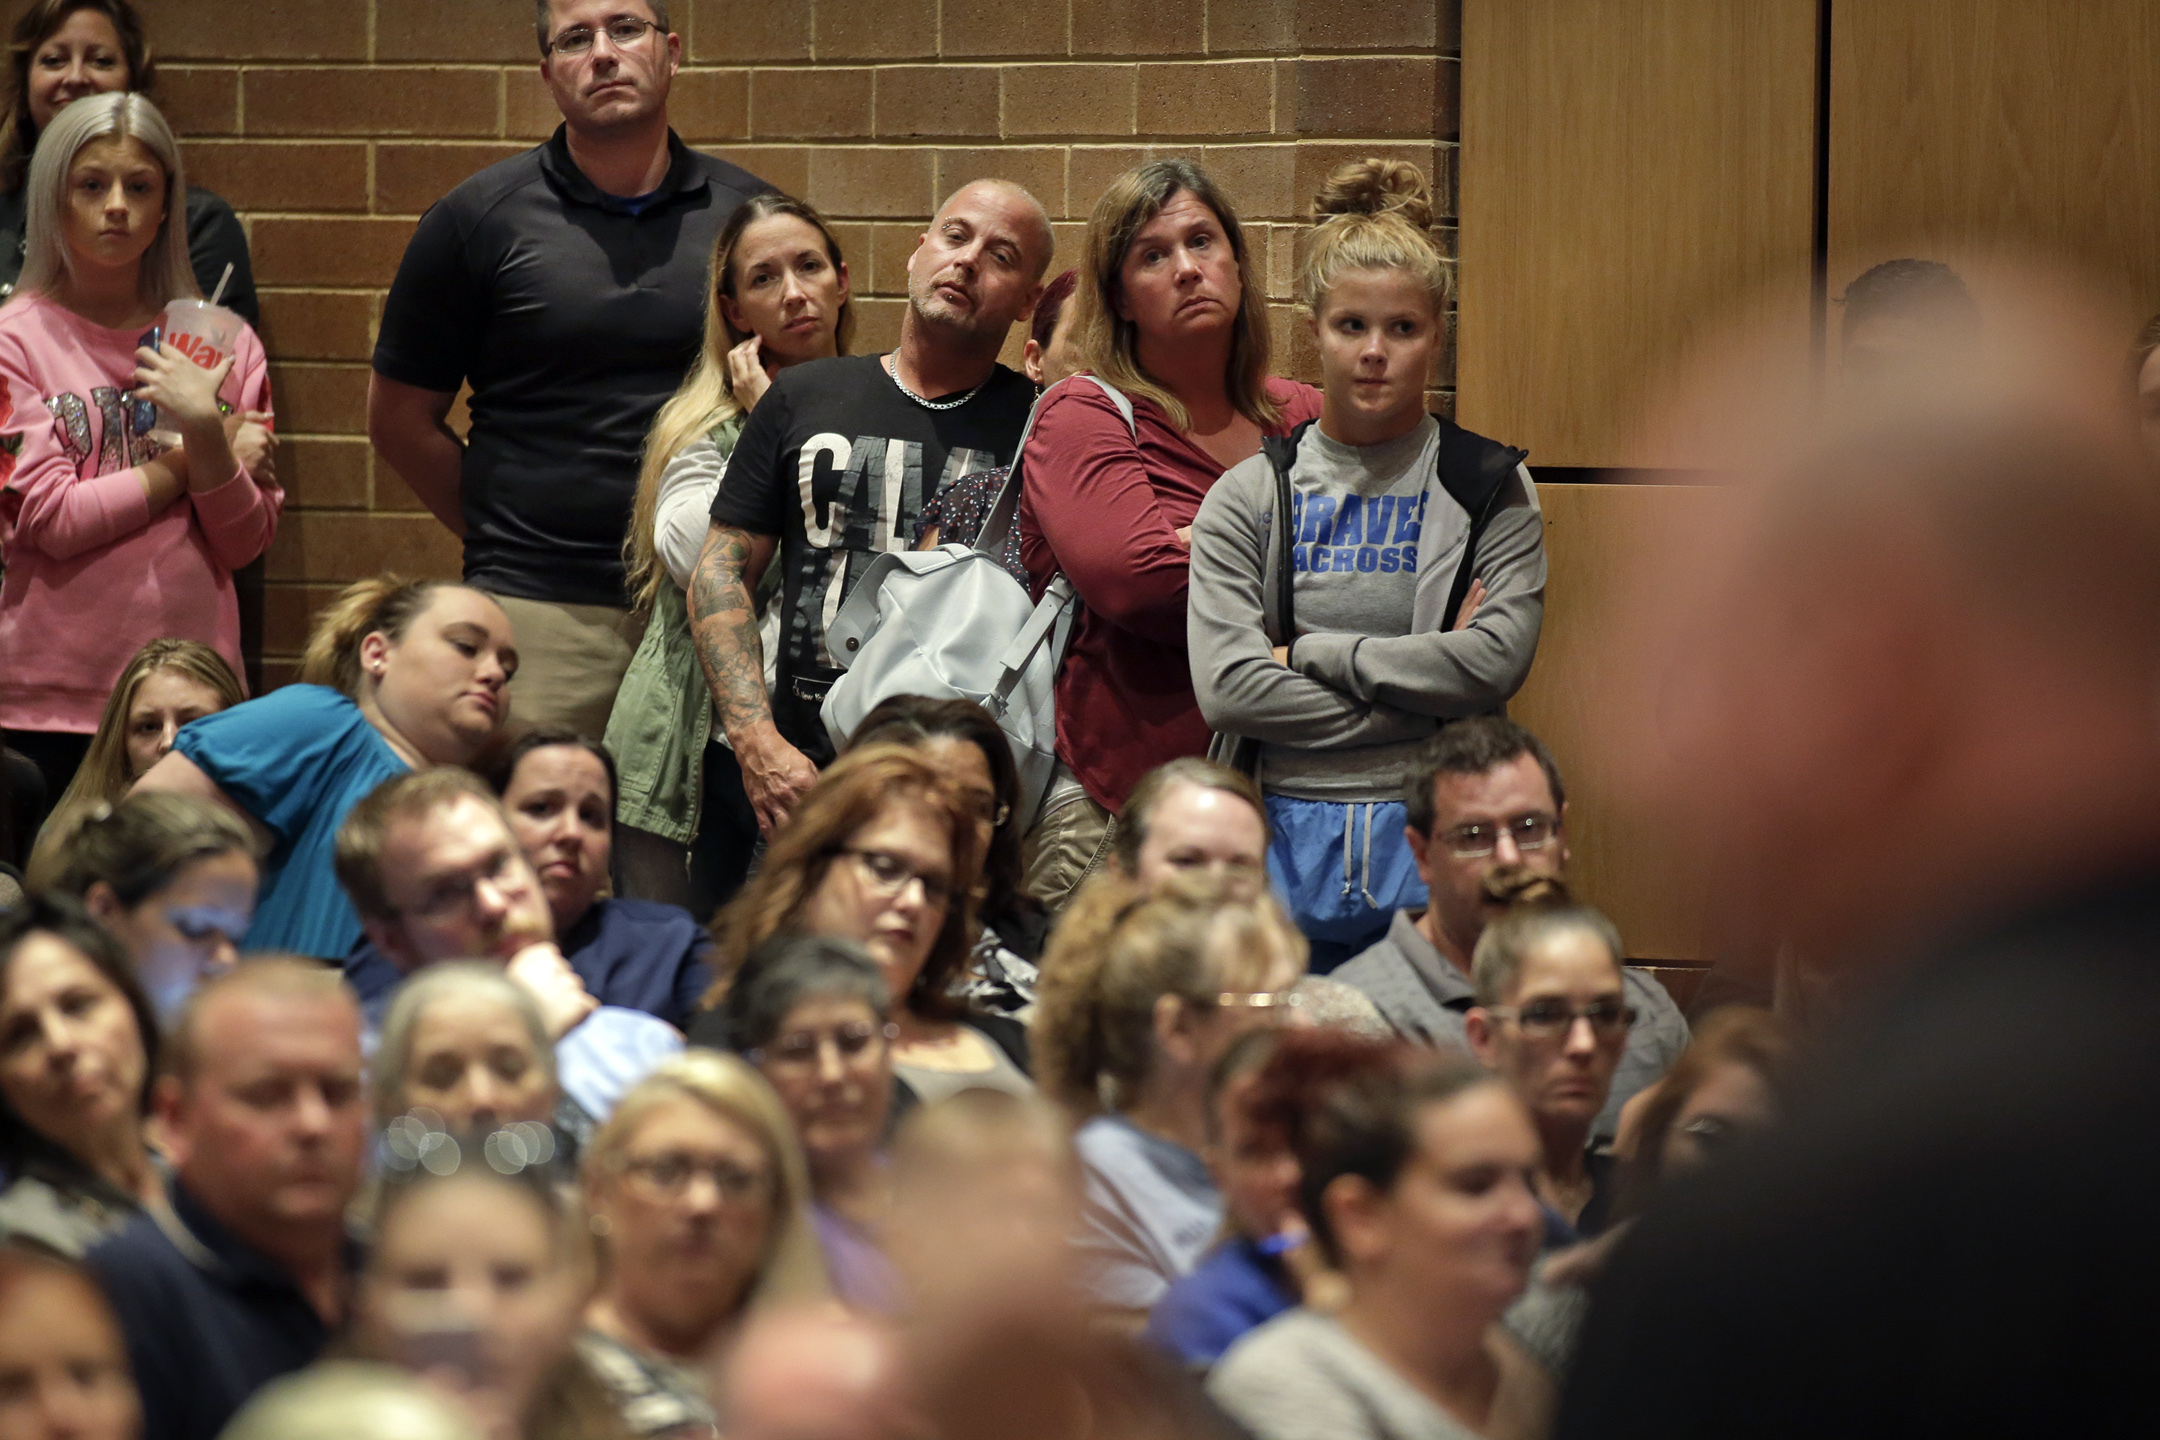 Unhappy faces during an emergency Monroe Twp school board meeting at Williamstown High School theater in Williamstown, NJ on Oct. 6, 2017. ELIZABETH ROBERTSON / Staff Photographer The nearly 6,000 students who attend public schools in Williamstown will have the week off so the Monroe School District can inspect all the schools for mold. Mold was found on ceiling tiles in the Williamstown Middle School on Friday, one day after the Holly Glen Elementary School was closed due to mold found throughout that building. The problem took off from there.